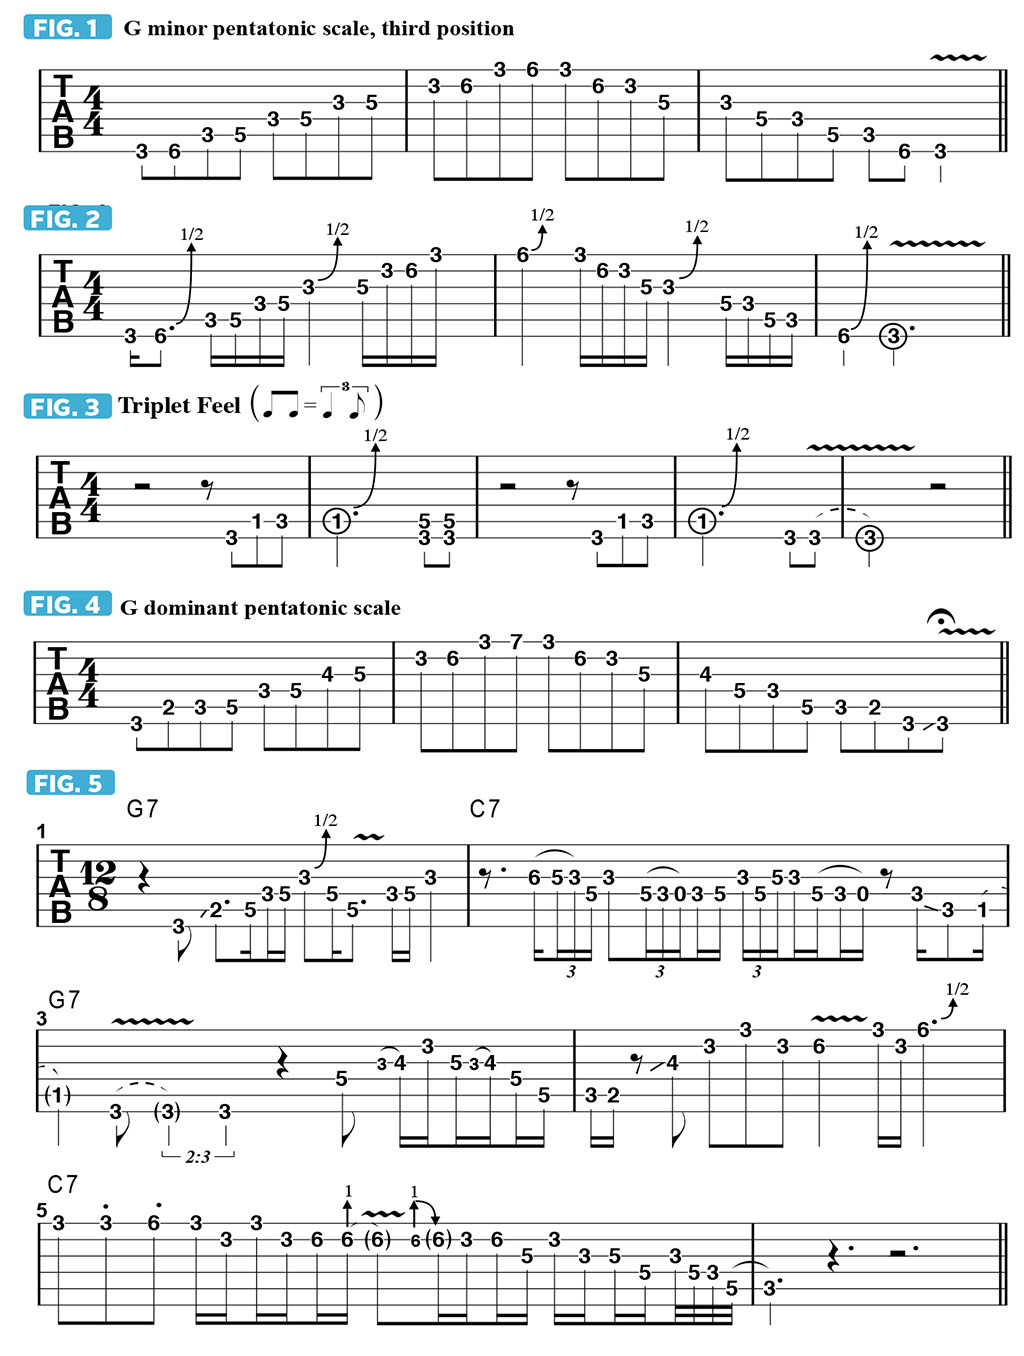 The major 3rd is the key to a killer blues solo - here's why | Guitarworld